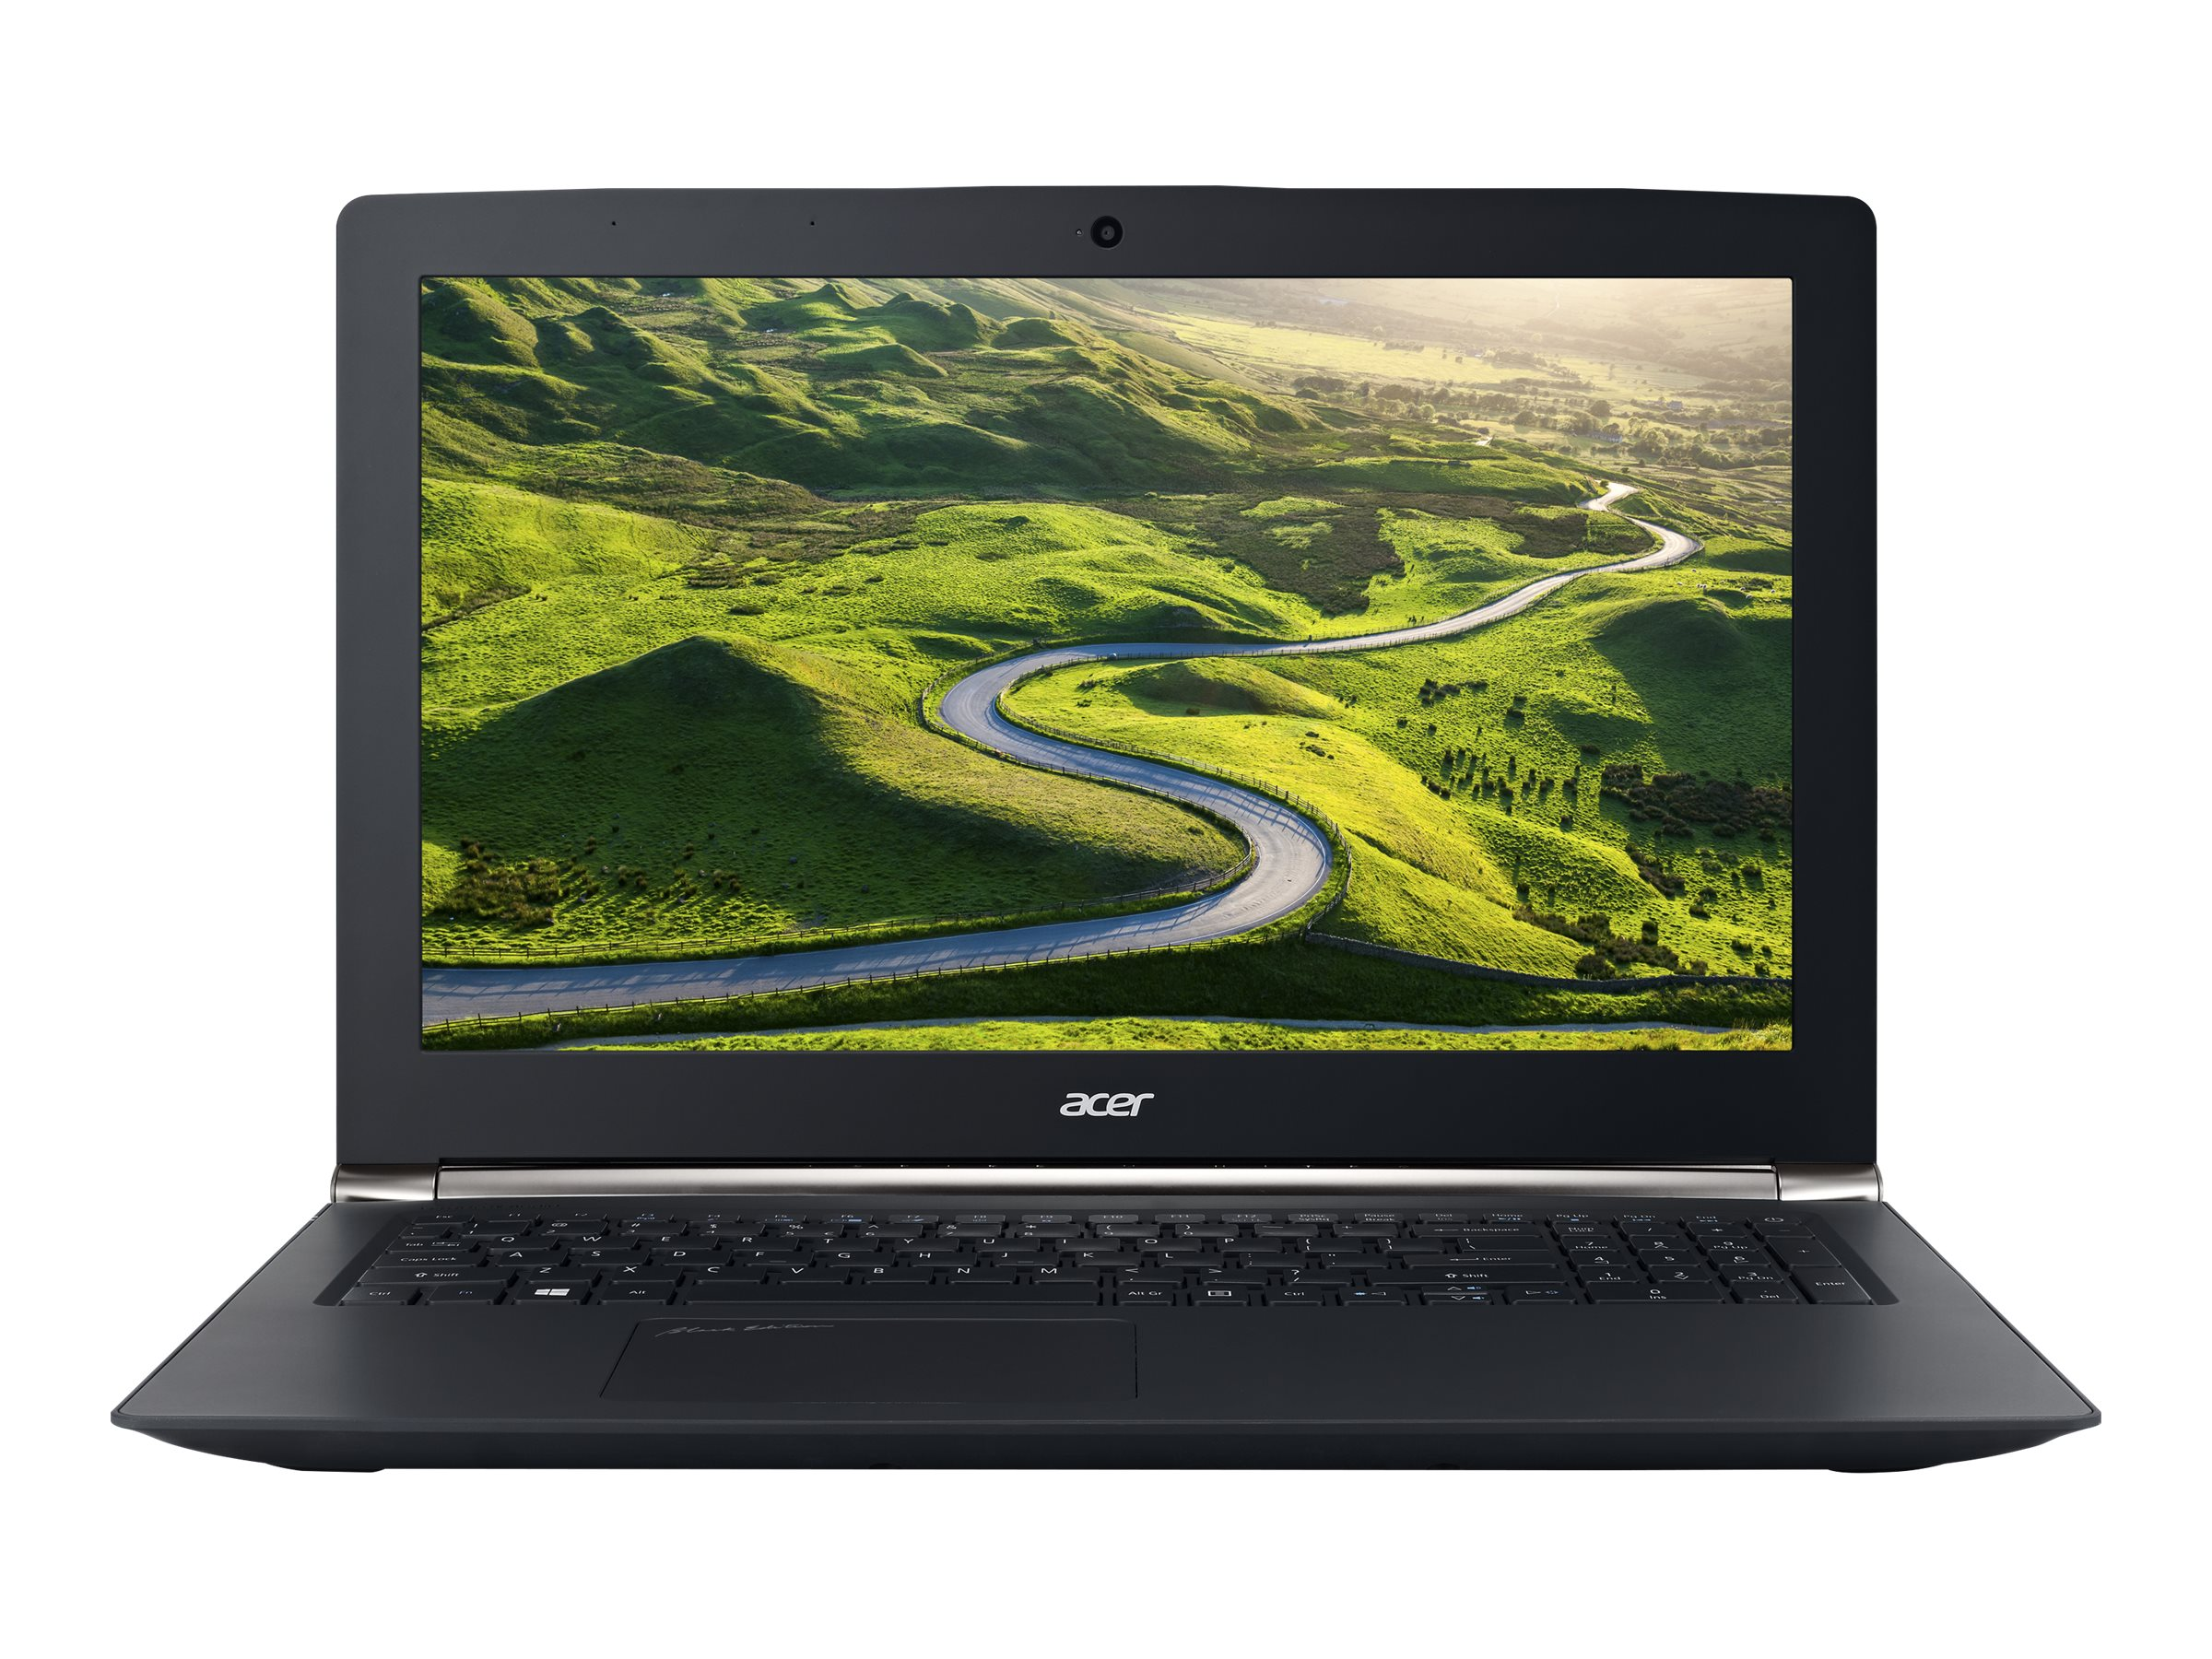 Acer Aspire V15 Nitro VN7-592G-7015 2.6GHz Core i7 15.6in display, NH.G6JAA.001